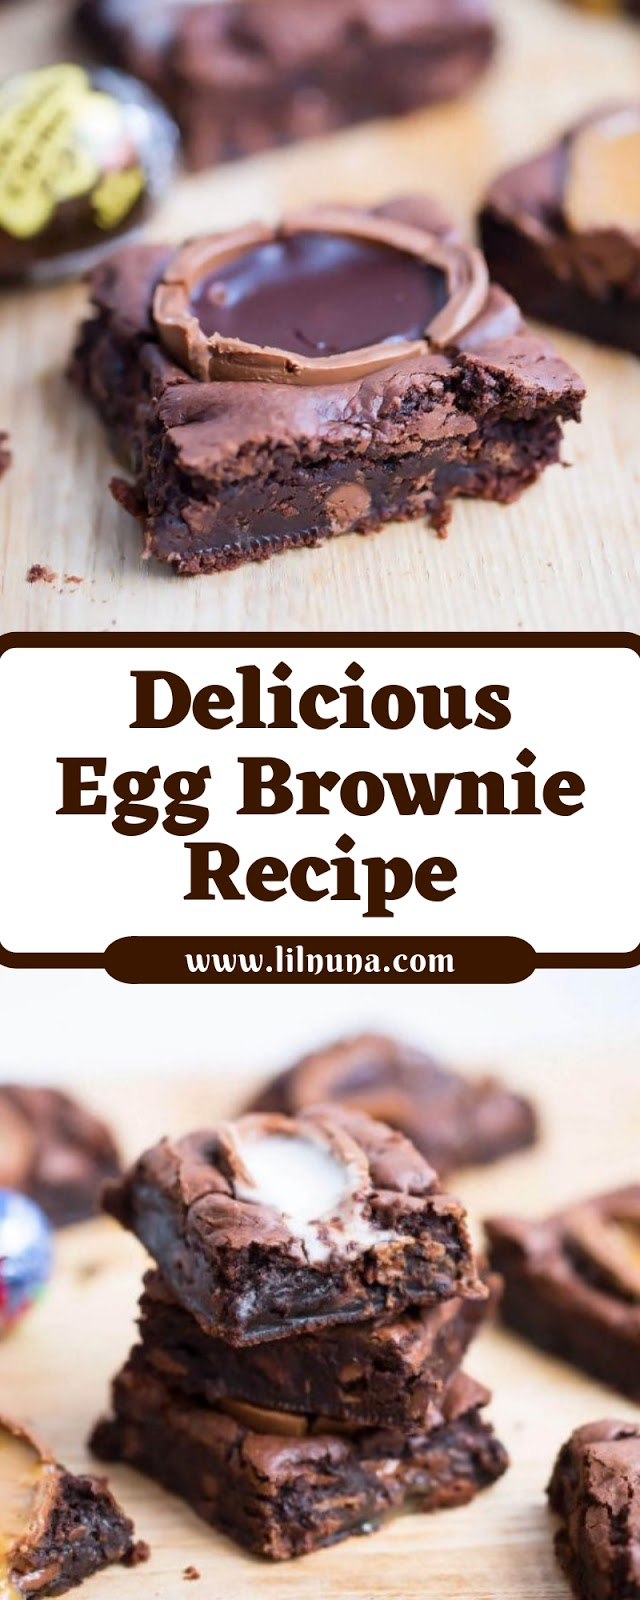 Delicious Egg Brownie Recipe